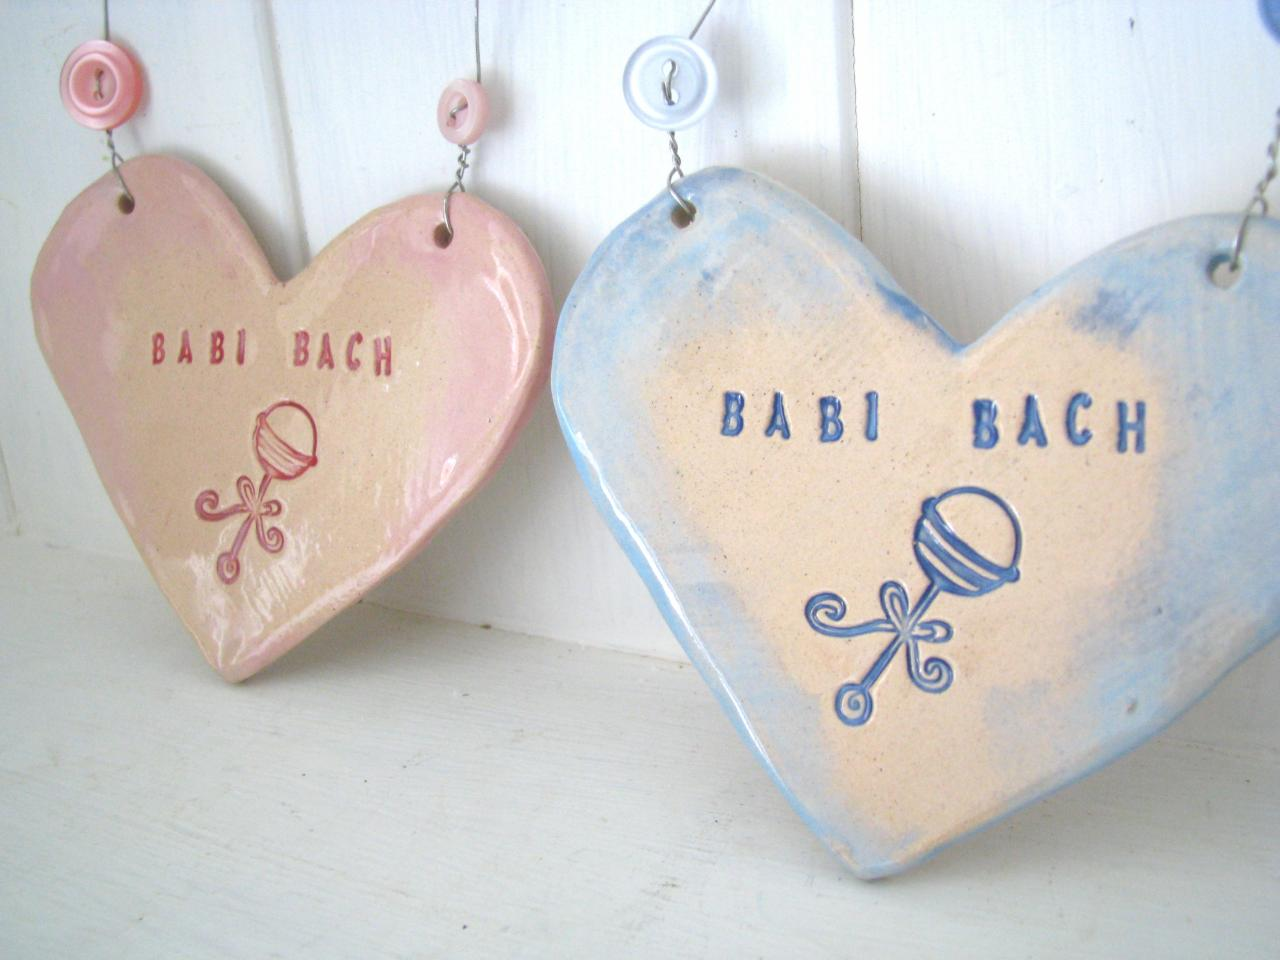 Babi Bach (Little Baby in Welsh) Heart - handmade in Wales, UK